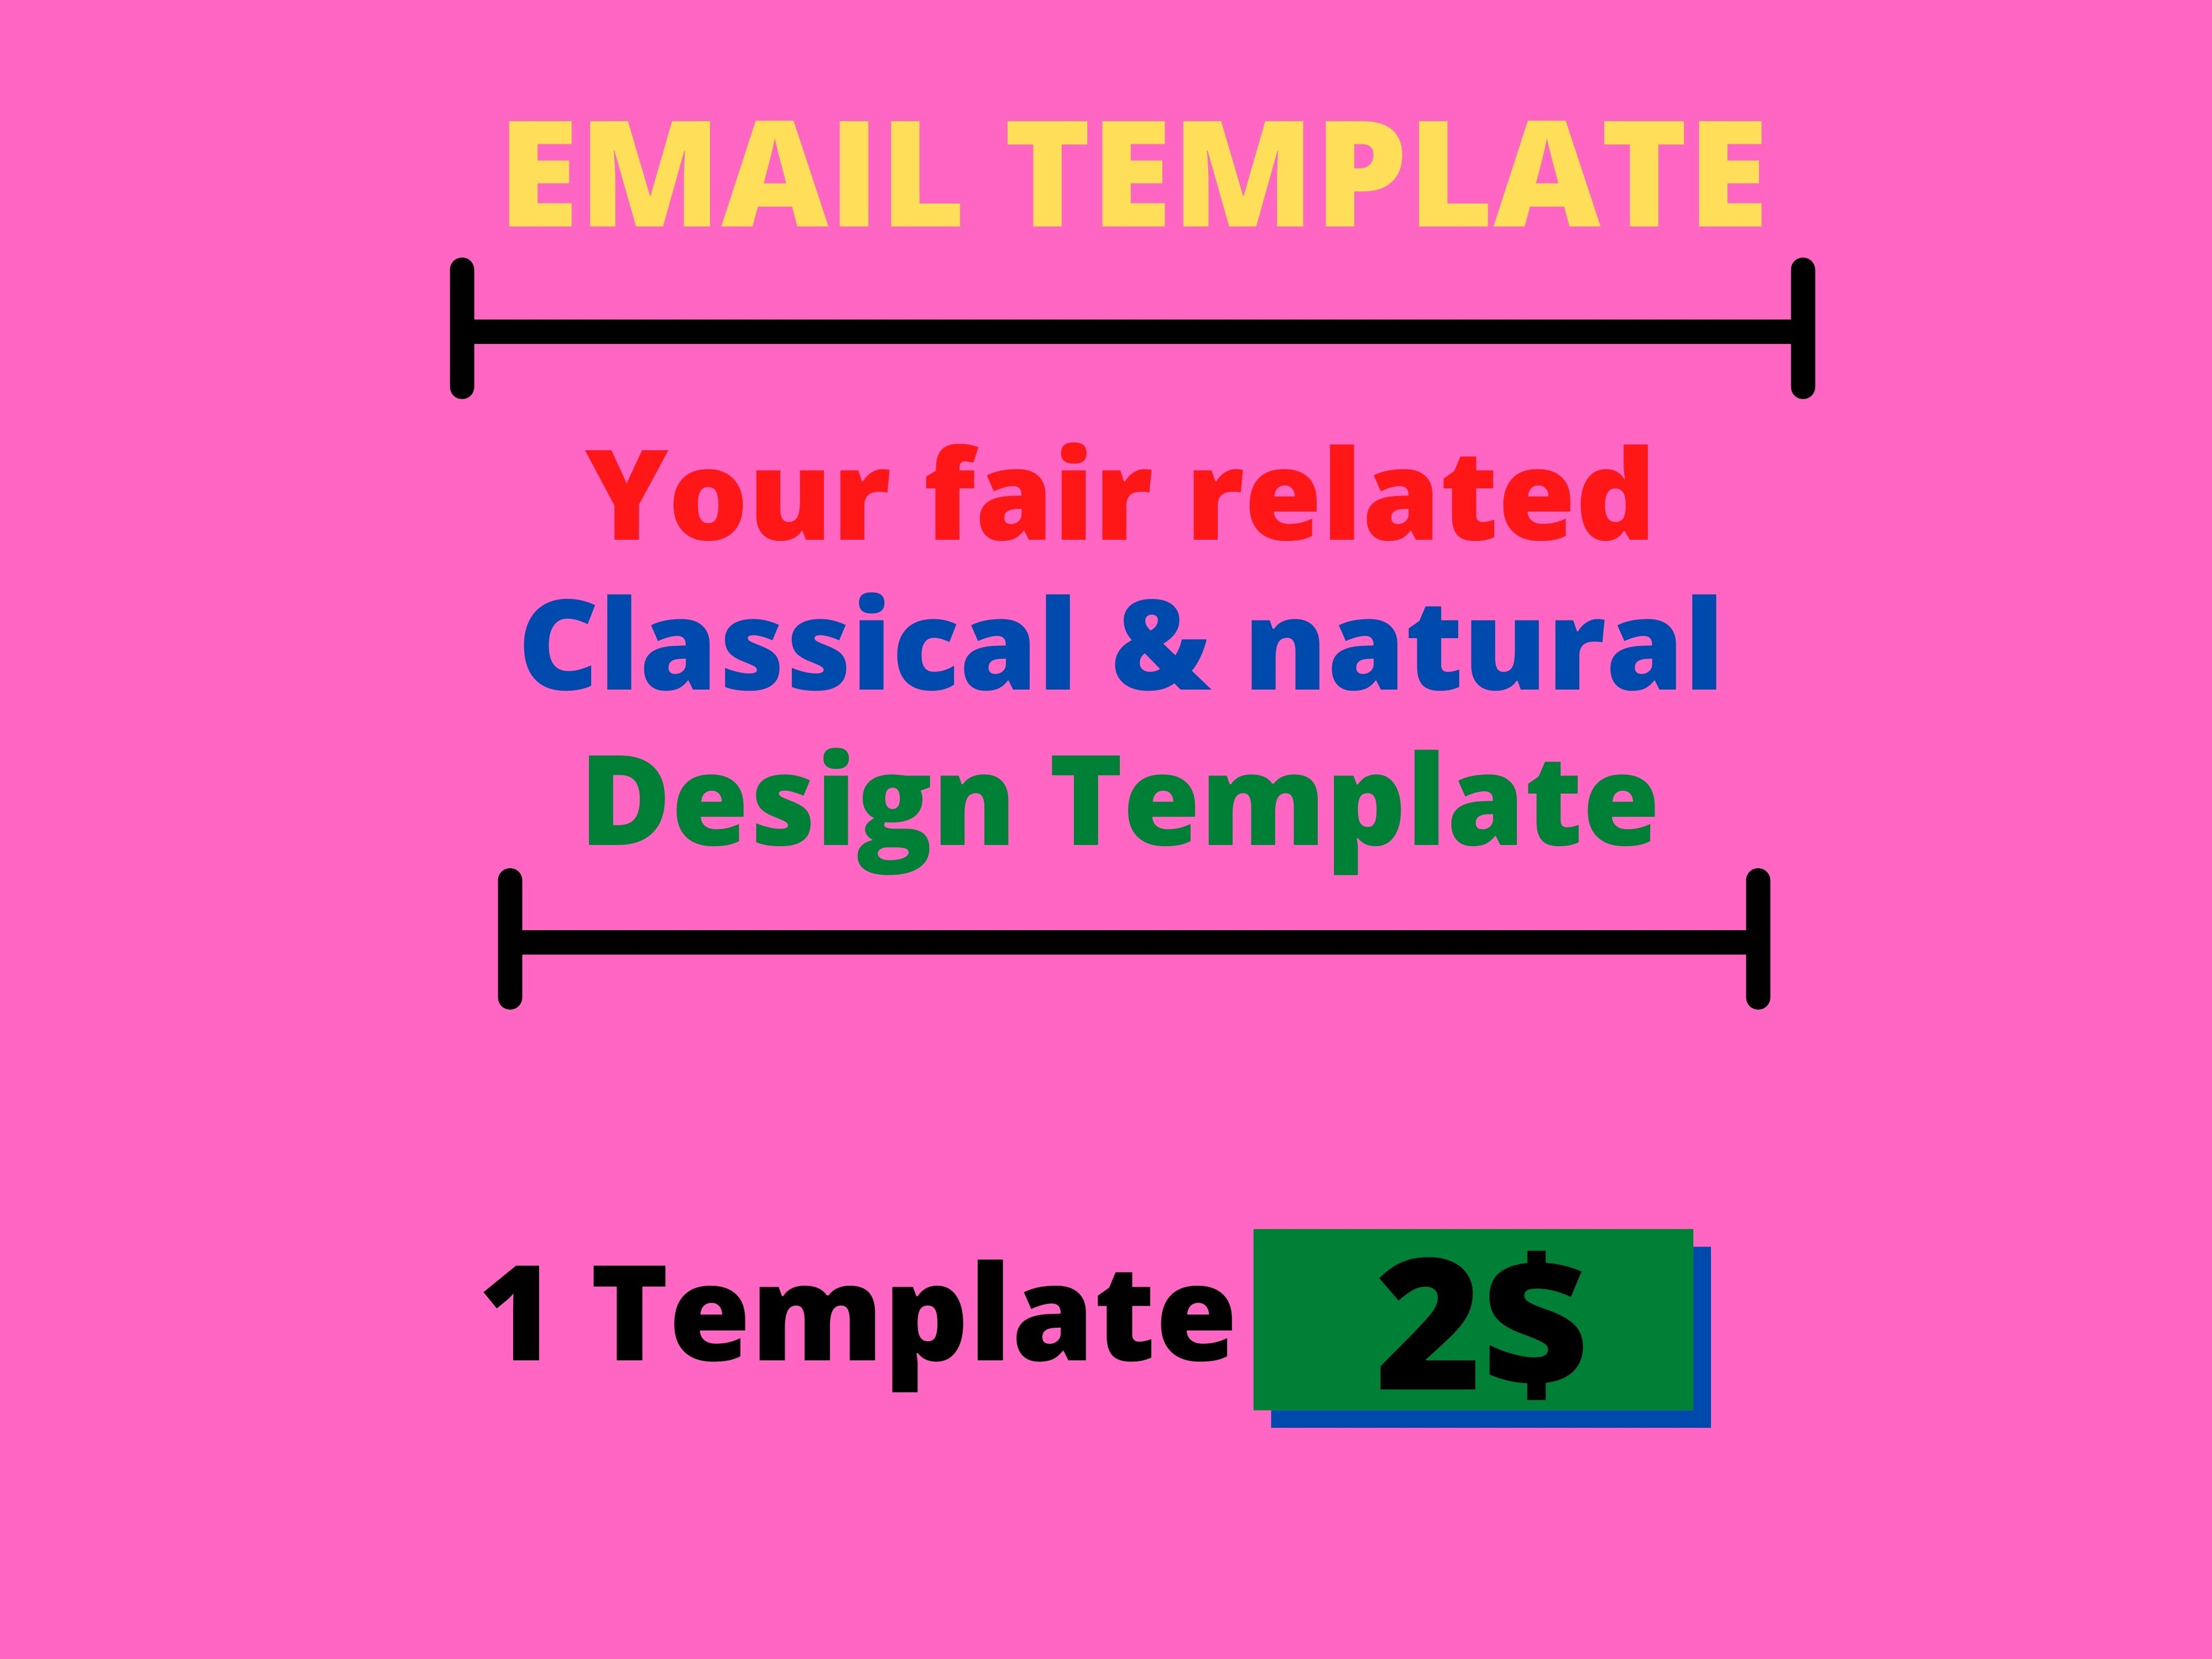 I will present you fair related Classic & natural Design Template